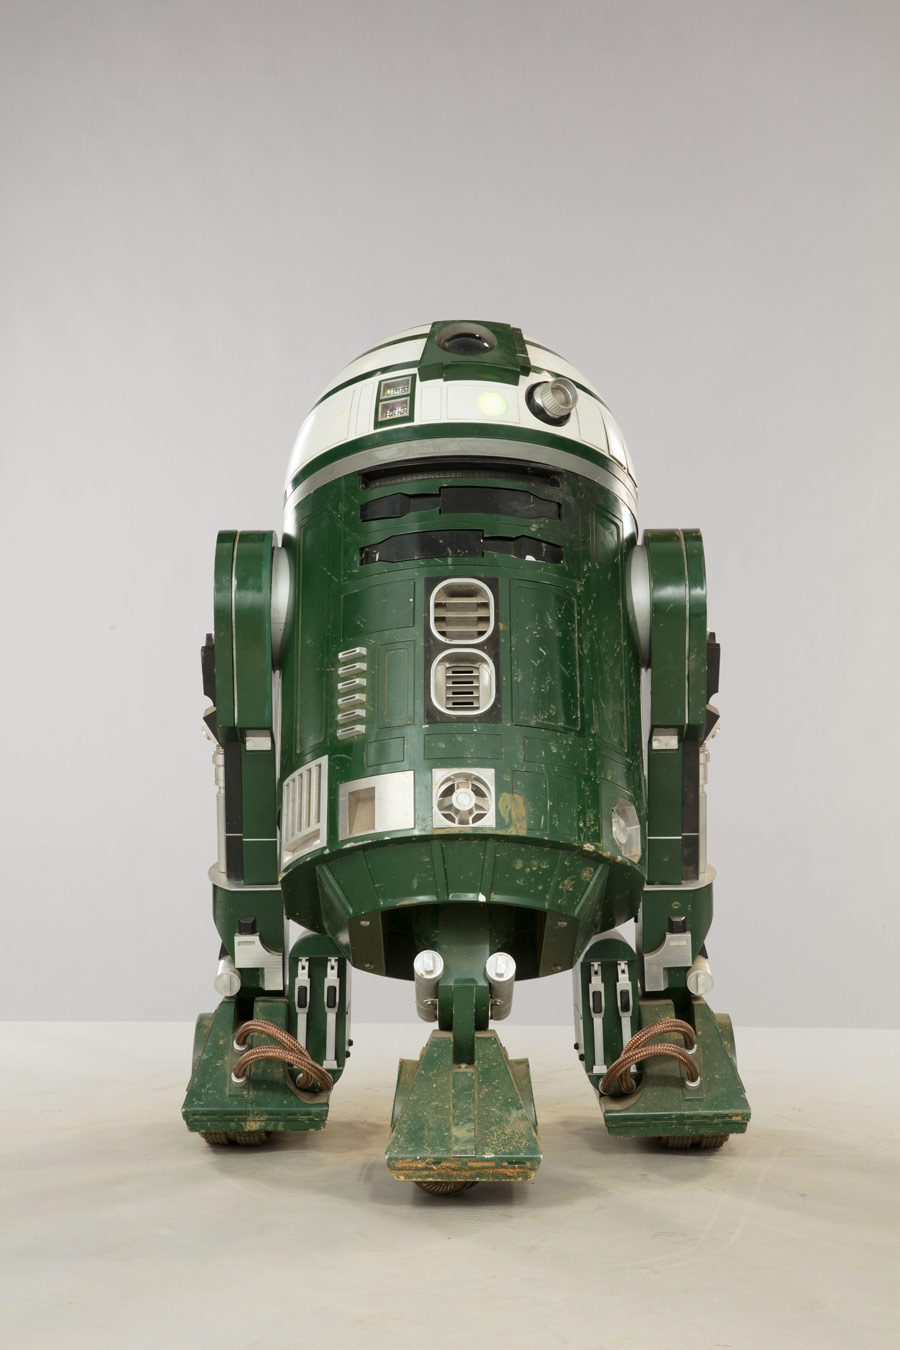 An astromech droid from Solo: A Star Wars Story.